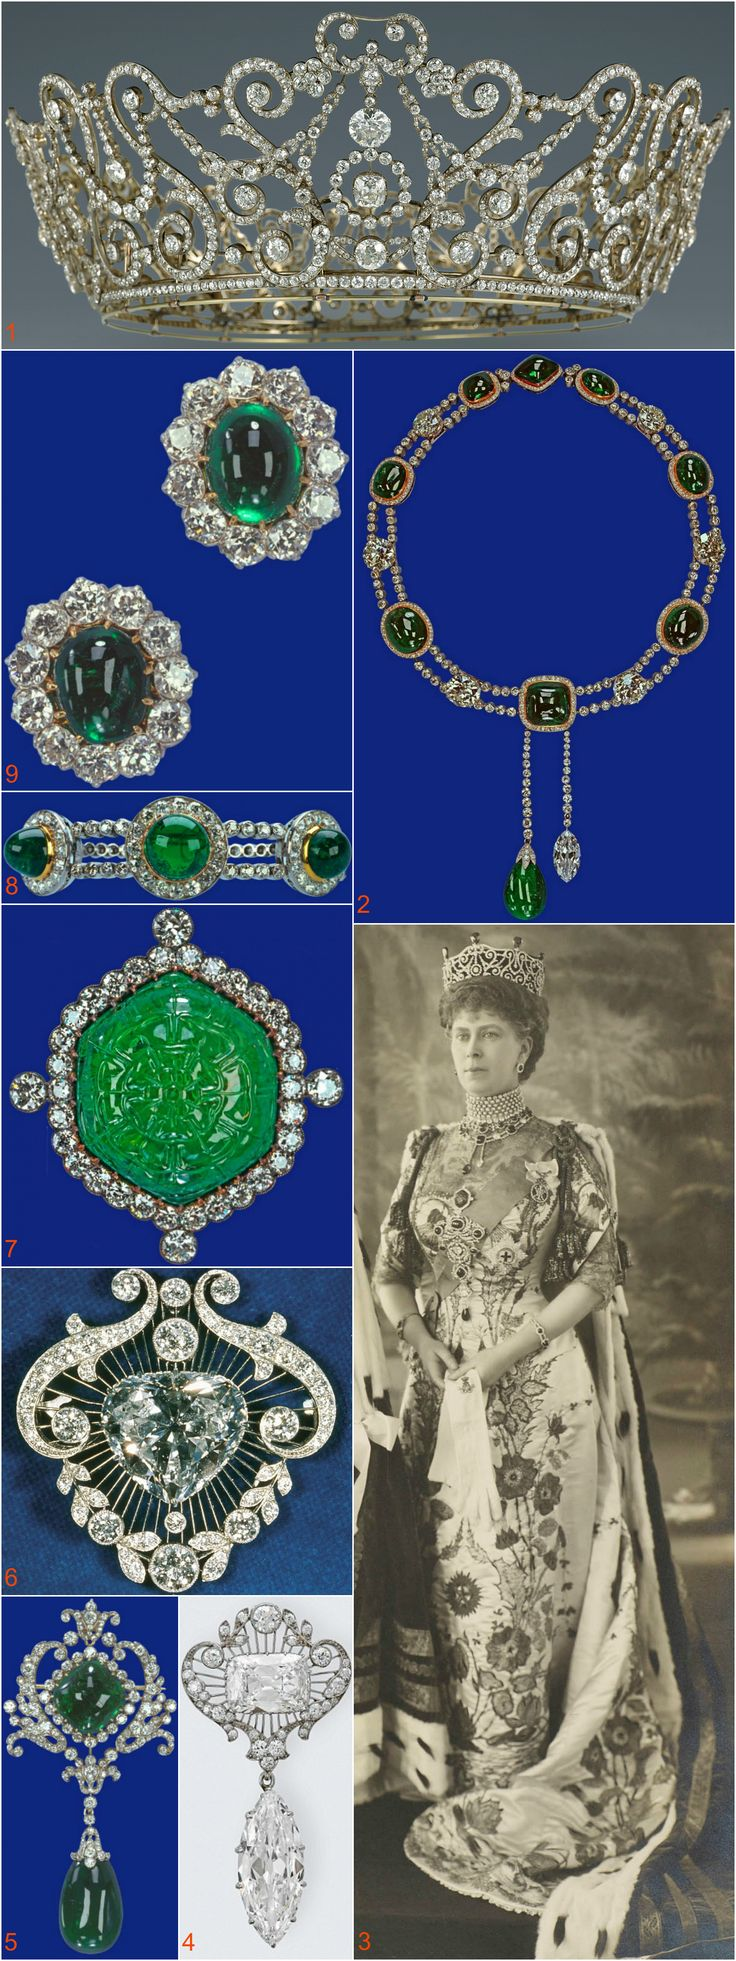 DELHI DURBAR TIARA~ worn by Queen Mary to the Durbar in Delhi on 1911, to mark the succession of King George V to the throne. Part of the Queen's parure of emeralds and diamonds made for the occasion by Garrards which also included a necklace (2), stomacher, brooch (7), bracelet (8) and earrings (9). Cullinan V (6) and Cullinan VIII (emerald-cut stone in 4) were worn as part of the stomacher. Queen Mary wore the stomacher with Cullinan VIII separating the two emeralds of the brooch in image 5.: